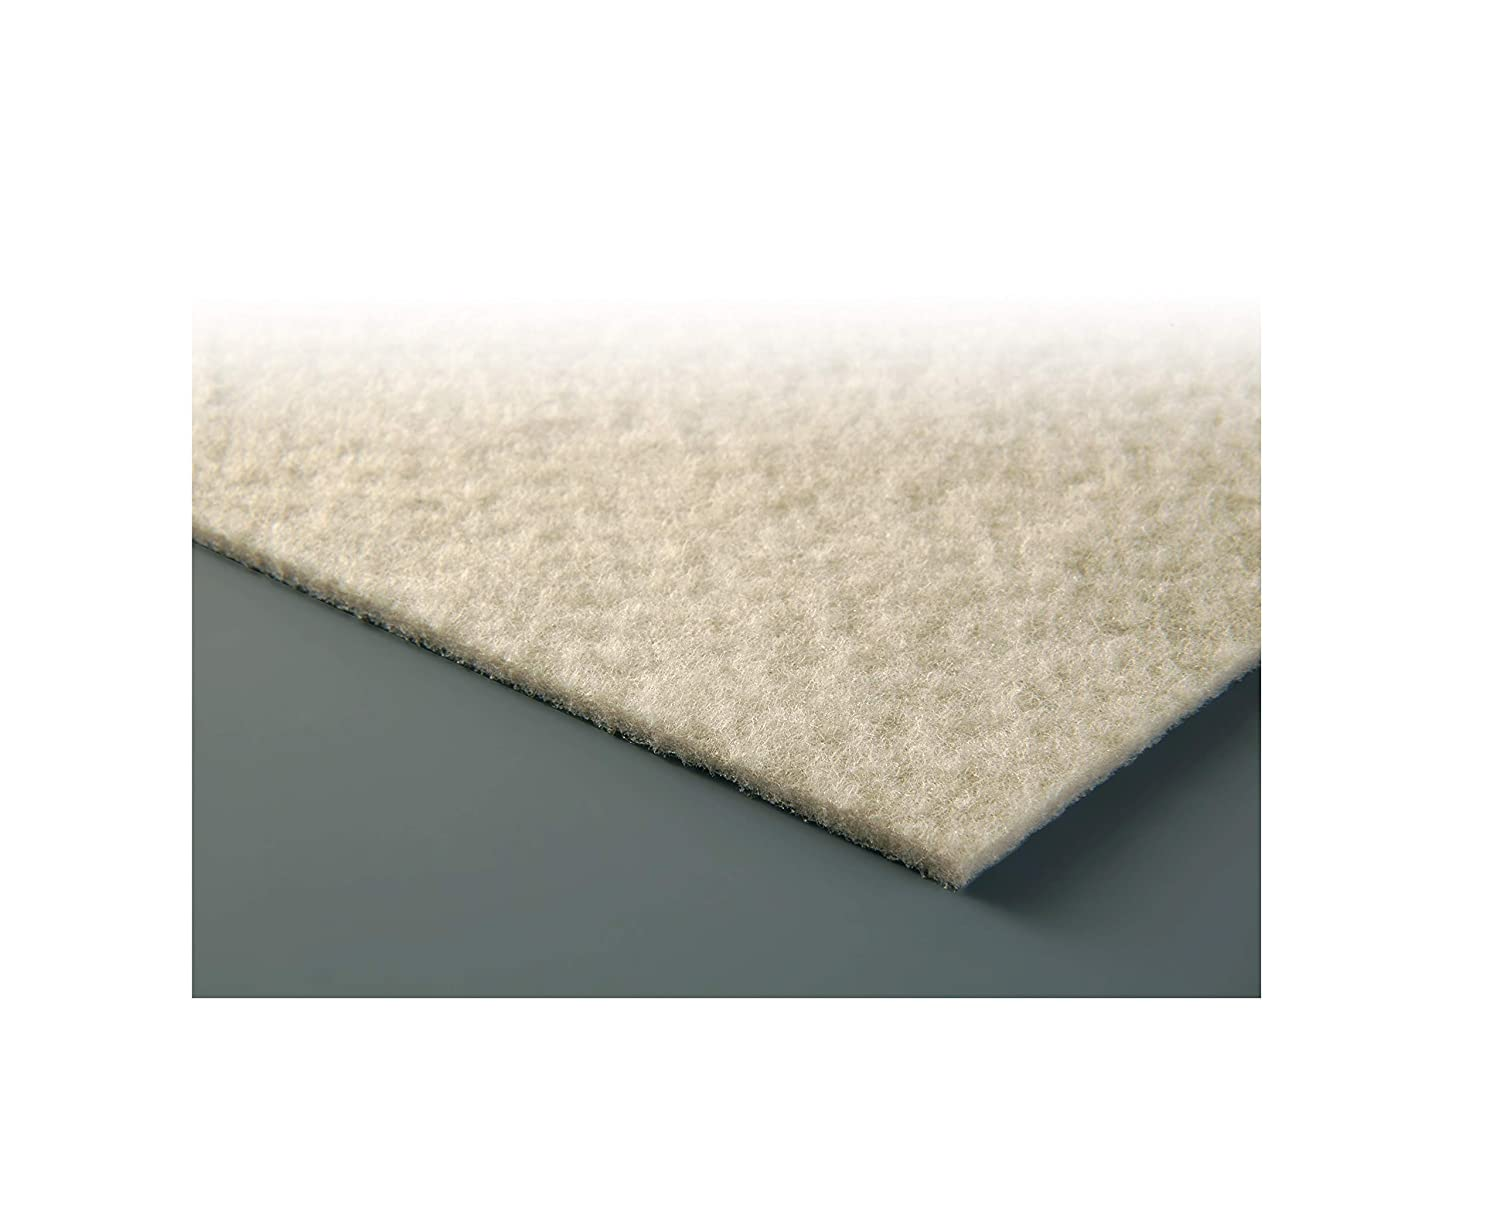 Rugs & Stuff Super All-Surface Anti Slip Gripper Underlay - 120 x 160cm - Choose from many different size options: Amazon.co.uk: Kitchen & Home